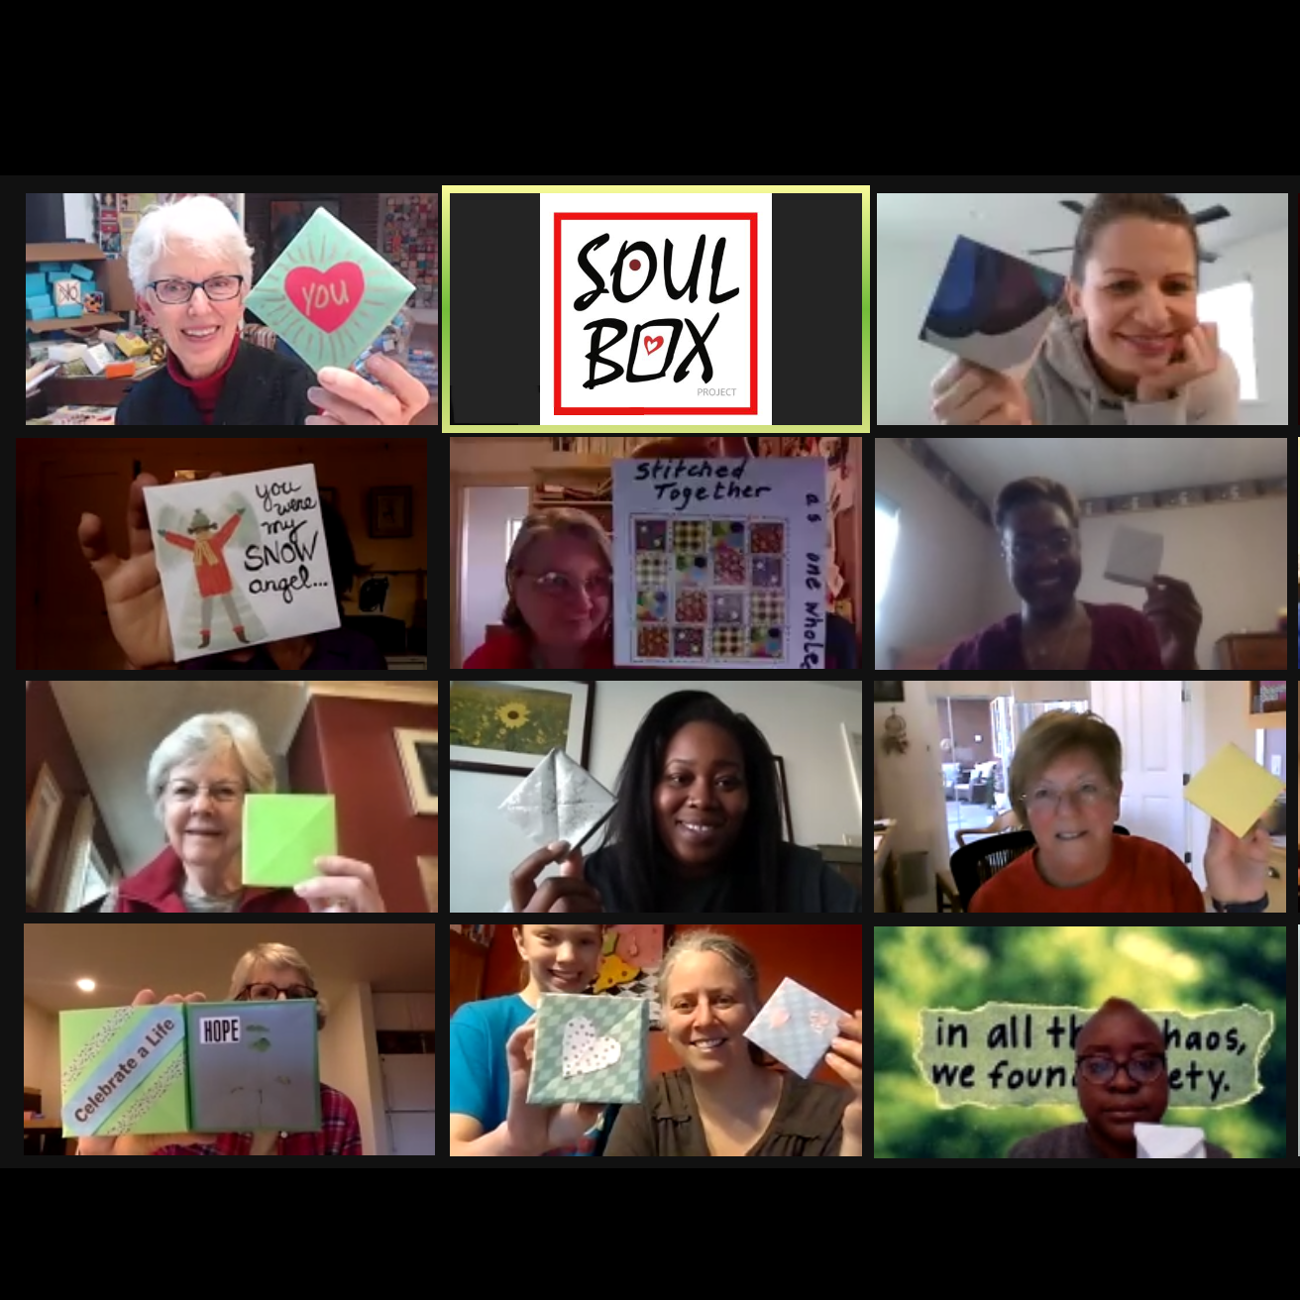 11 people show Soul Boxes they folded in virtual gathering via Zoom